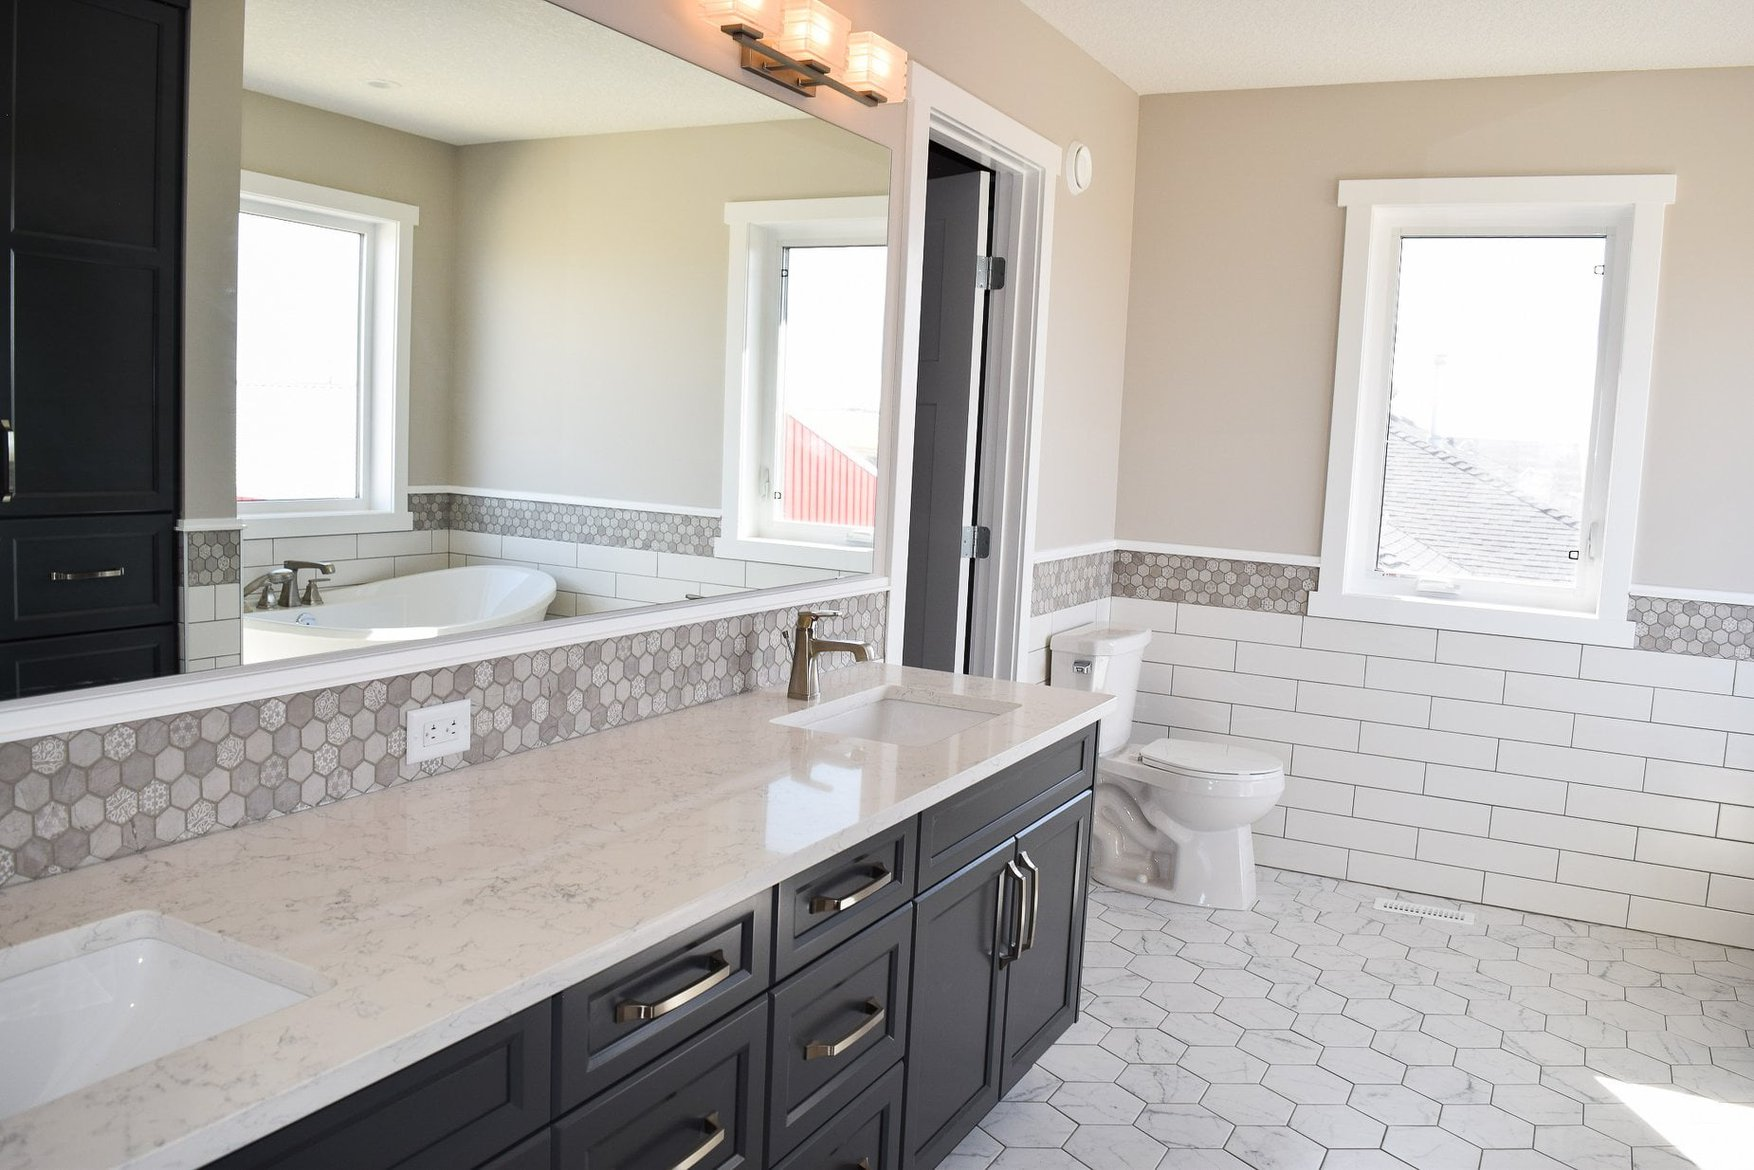 bathroom of a modular pre built ready to move home by nelson homes.jpg